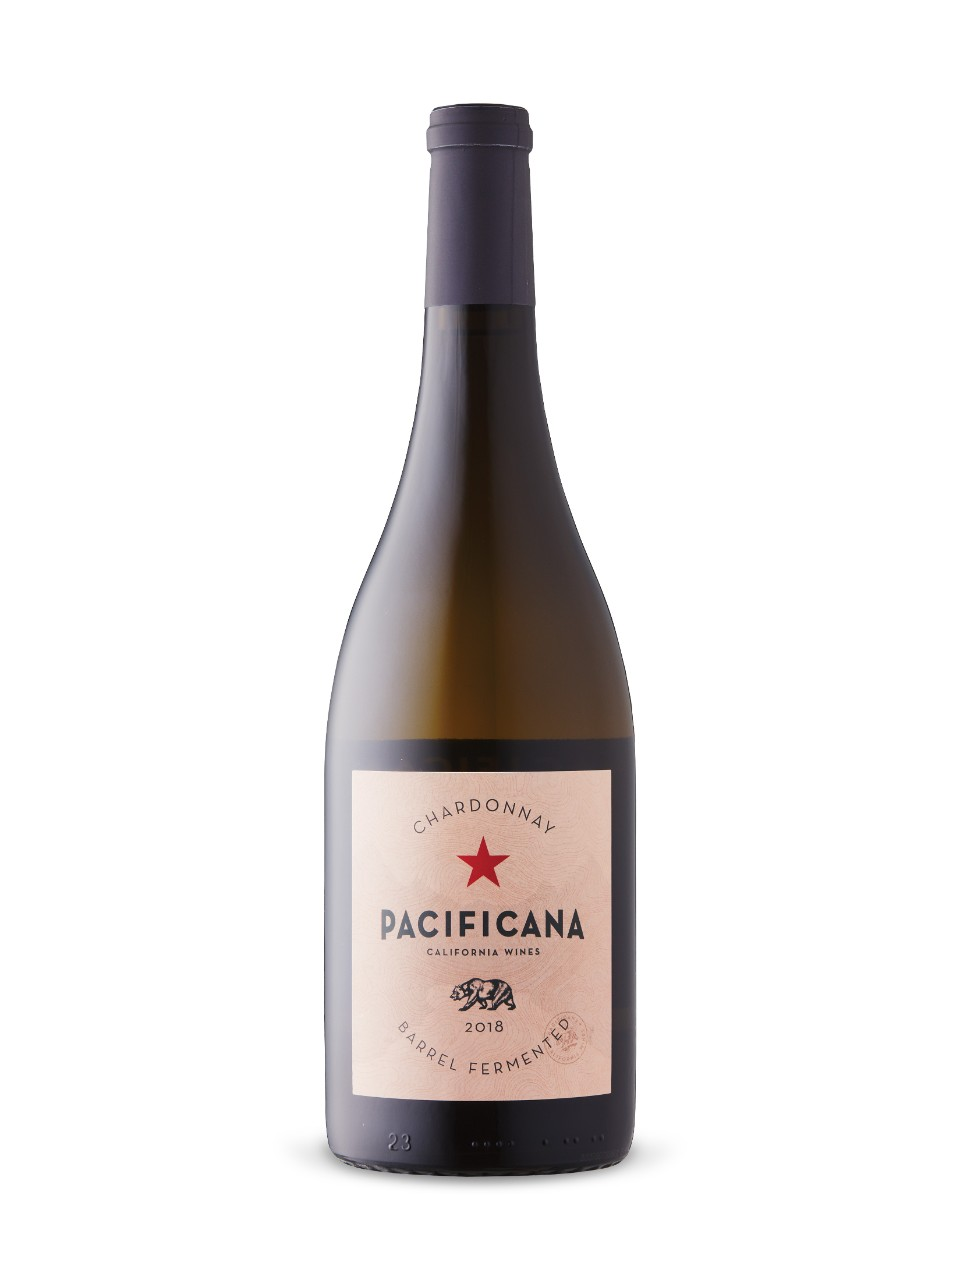 Pacificana Barrel Fermented Chardonnay 2018 from LCBO